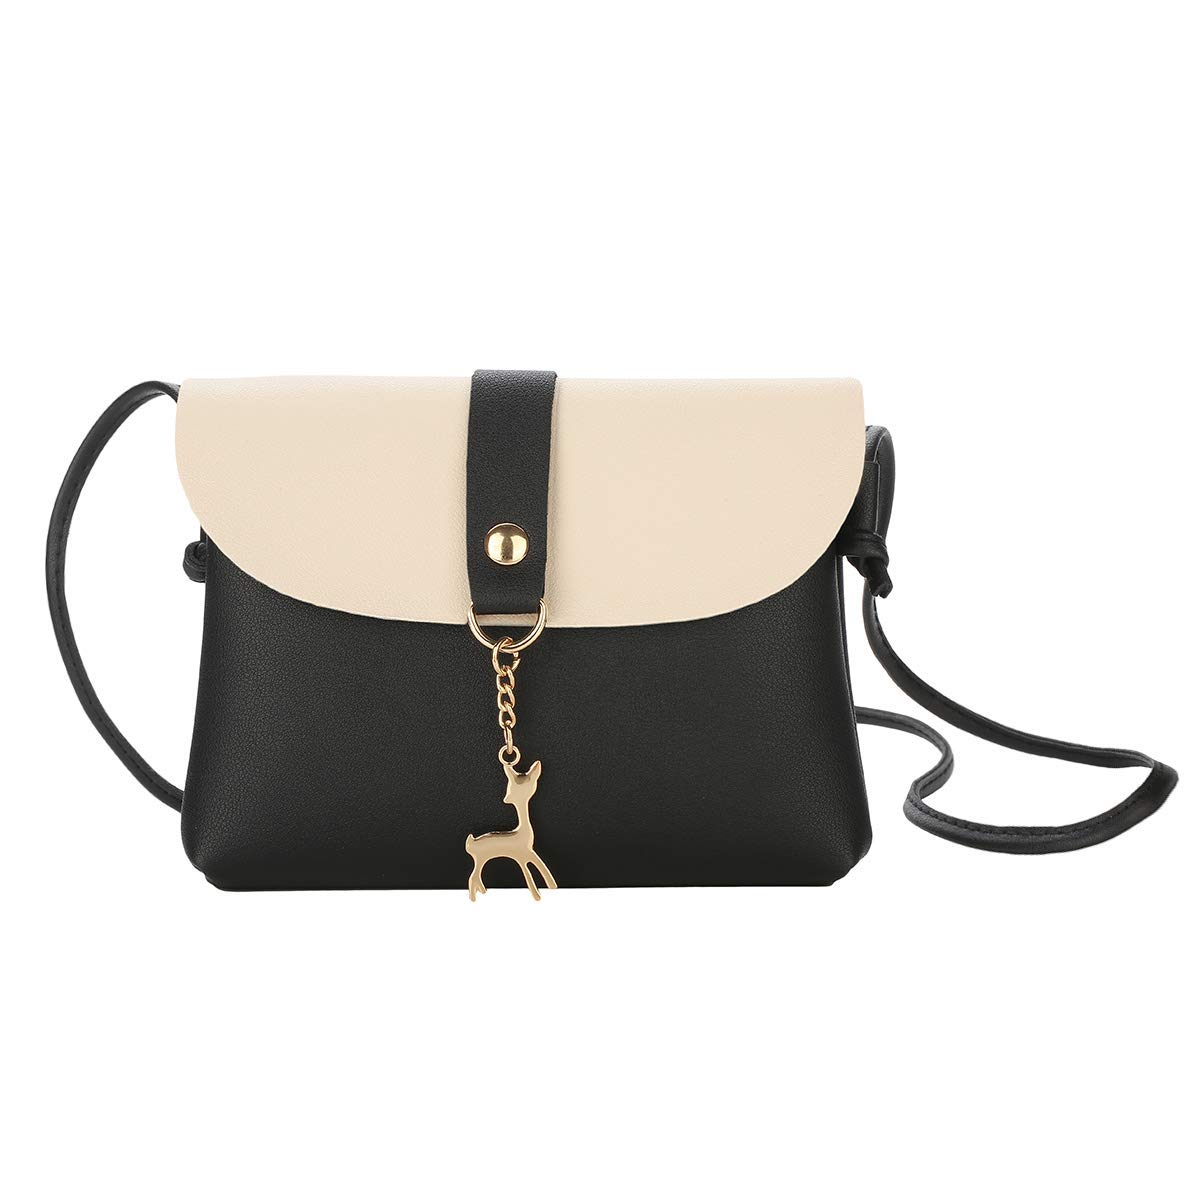 7d15c62f1c5 Small Crossbody Purse for Women With Pendant,PU Leather Crossbody Bag With  Strap Cell Phone Bag for Girl